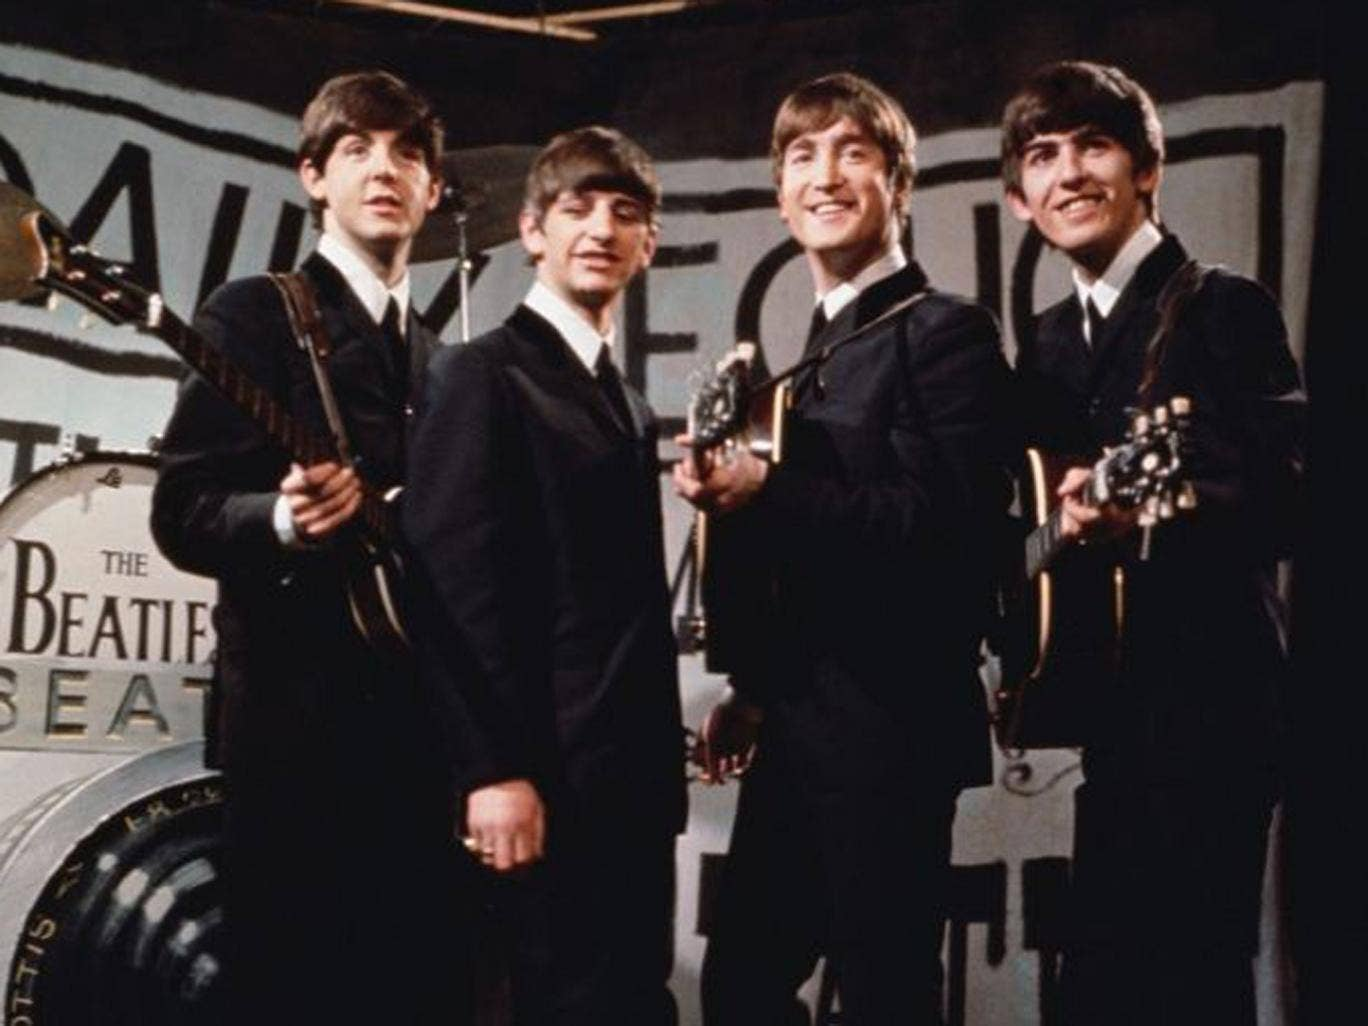 The Beatles made it into The Feeling's 12-minute medley of British rock's greatest achievements